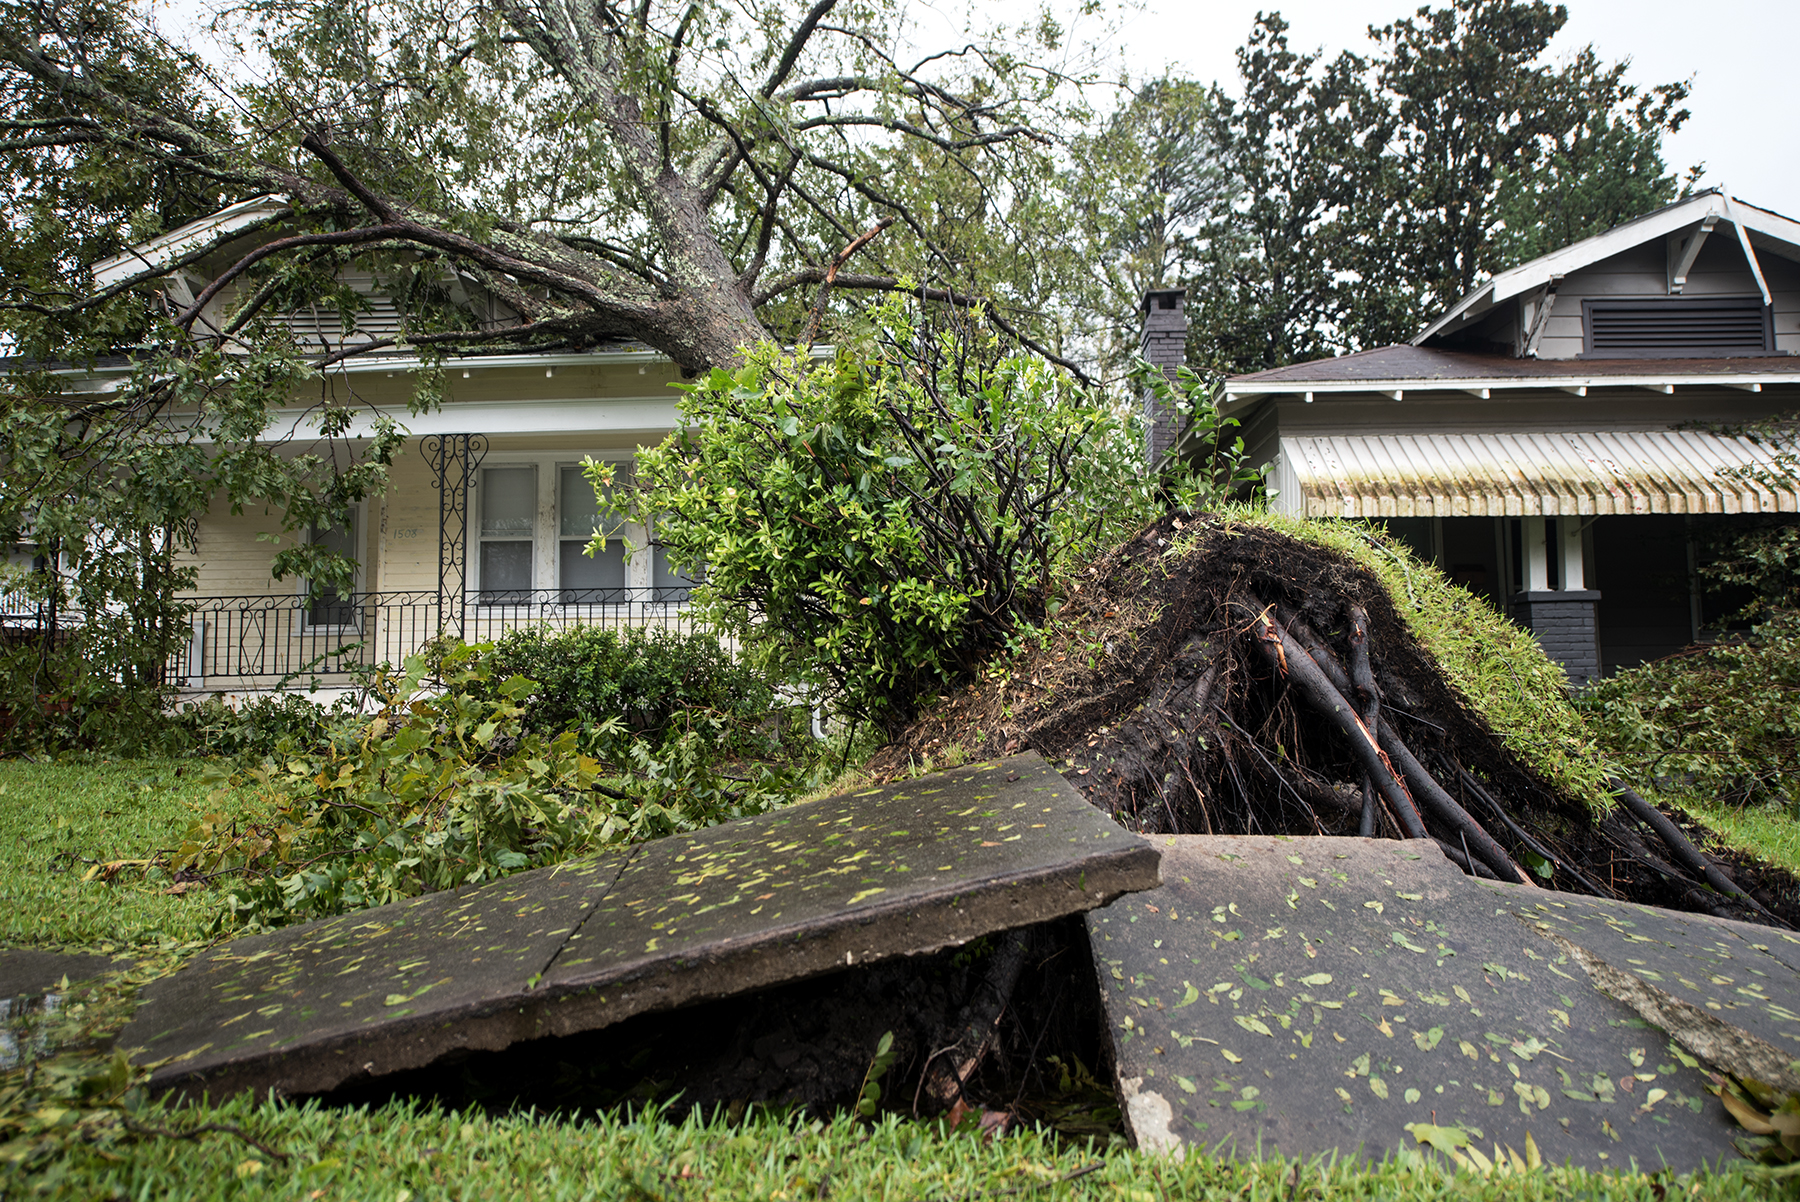 A tree is pulled from the ground and has fallen ontop of a house from Hurricane Florence in the Southside district in Wilmington, NC, USA, September 15, 2018.